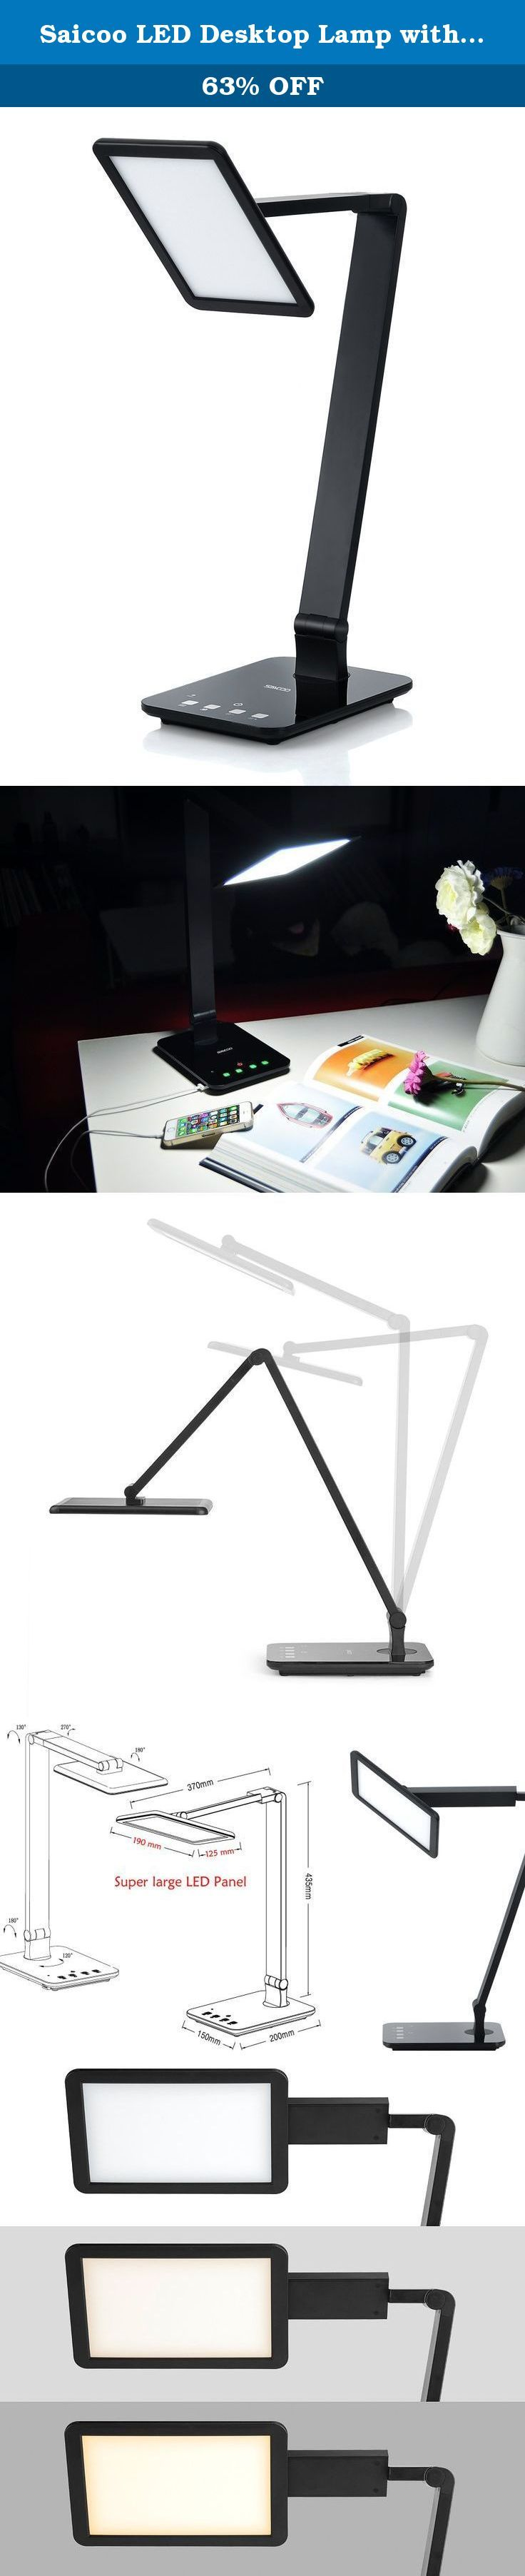 Saicoo LED Desktop Lamp with Large LED Panel, Seamless Dimming-Control of Brightness and Color Temperature, An USB Charging Port. An LED lamp accompanies you from day to night, work to sleep. Apply to All Scenes Color temperature covers cold (5500K-6500K), natural(4300K-5300K), warm (2700K-3300K)color, ideal for working, reading, relax respectively. Sleep light triggered by an independent switch renders dim light for the night. Memory setting keeps operations you have done last time…